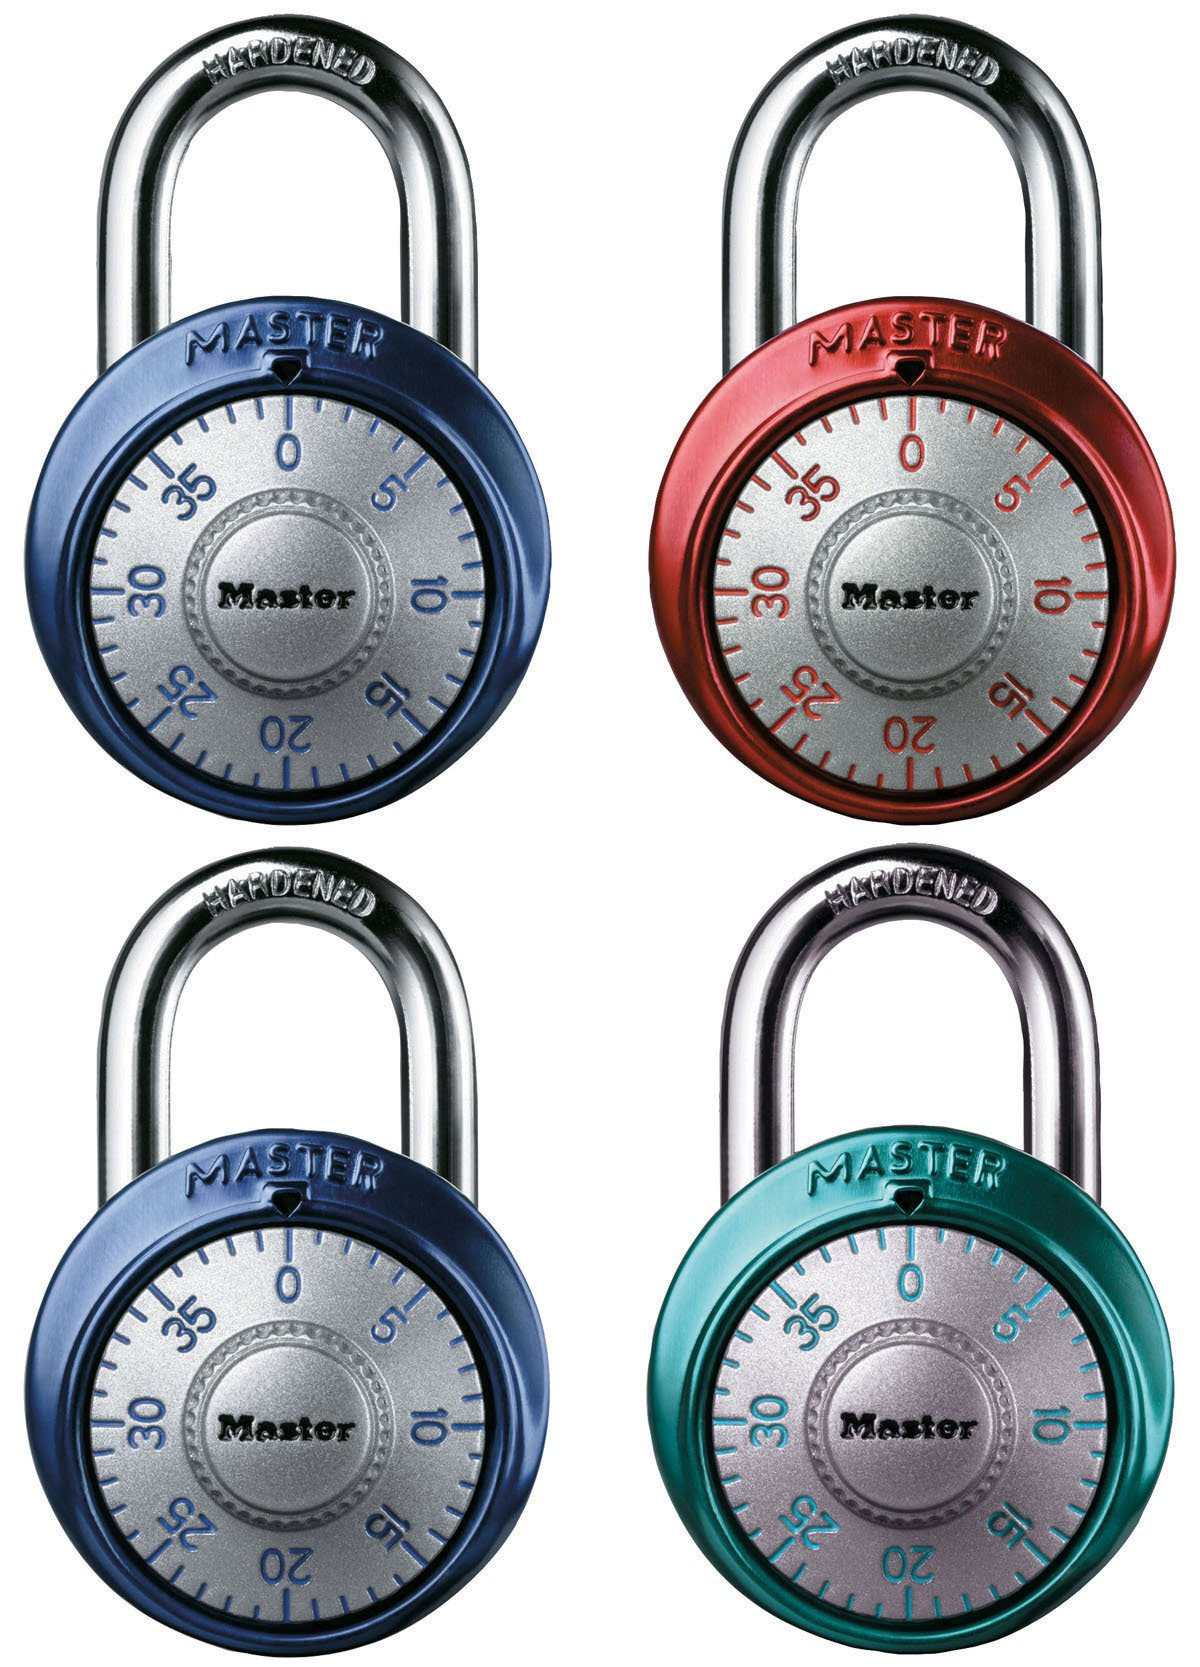 Master Lock 1561DAST Combination Dial Padlock, with Aluminum Cover, 1-7/8-Inch Wide, 4-Pack, Color May Vary